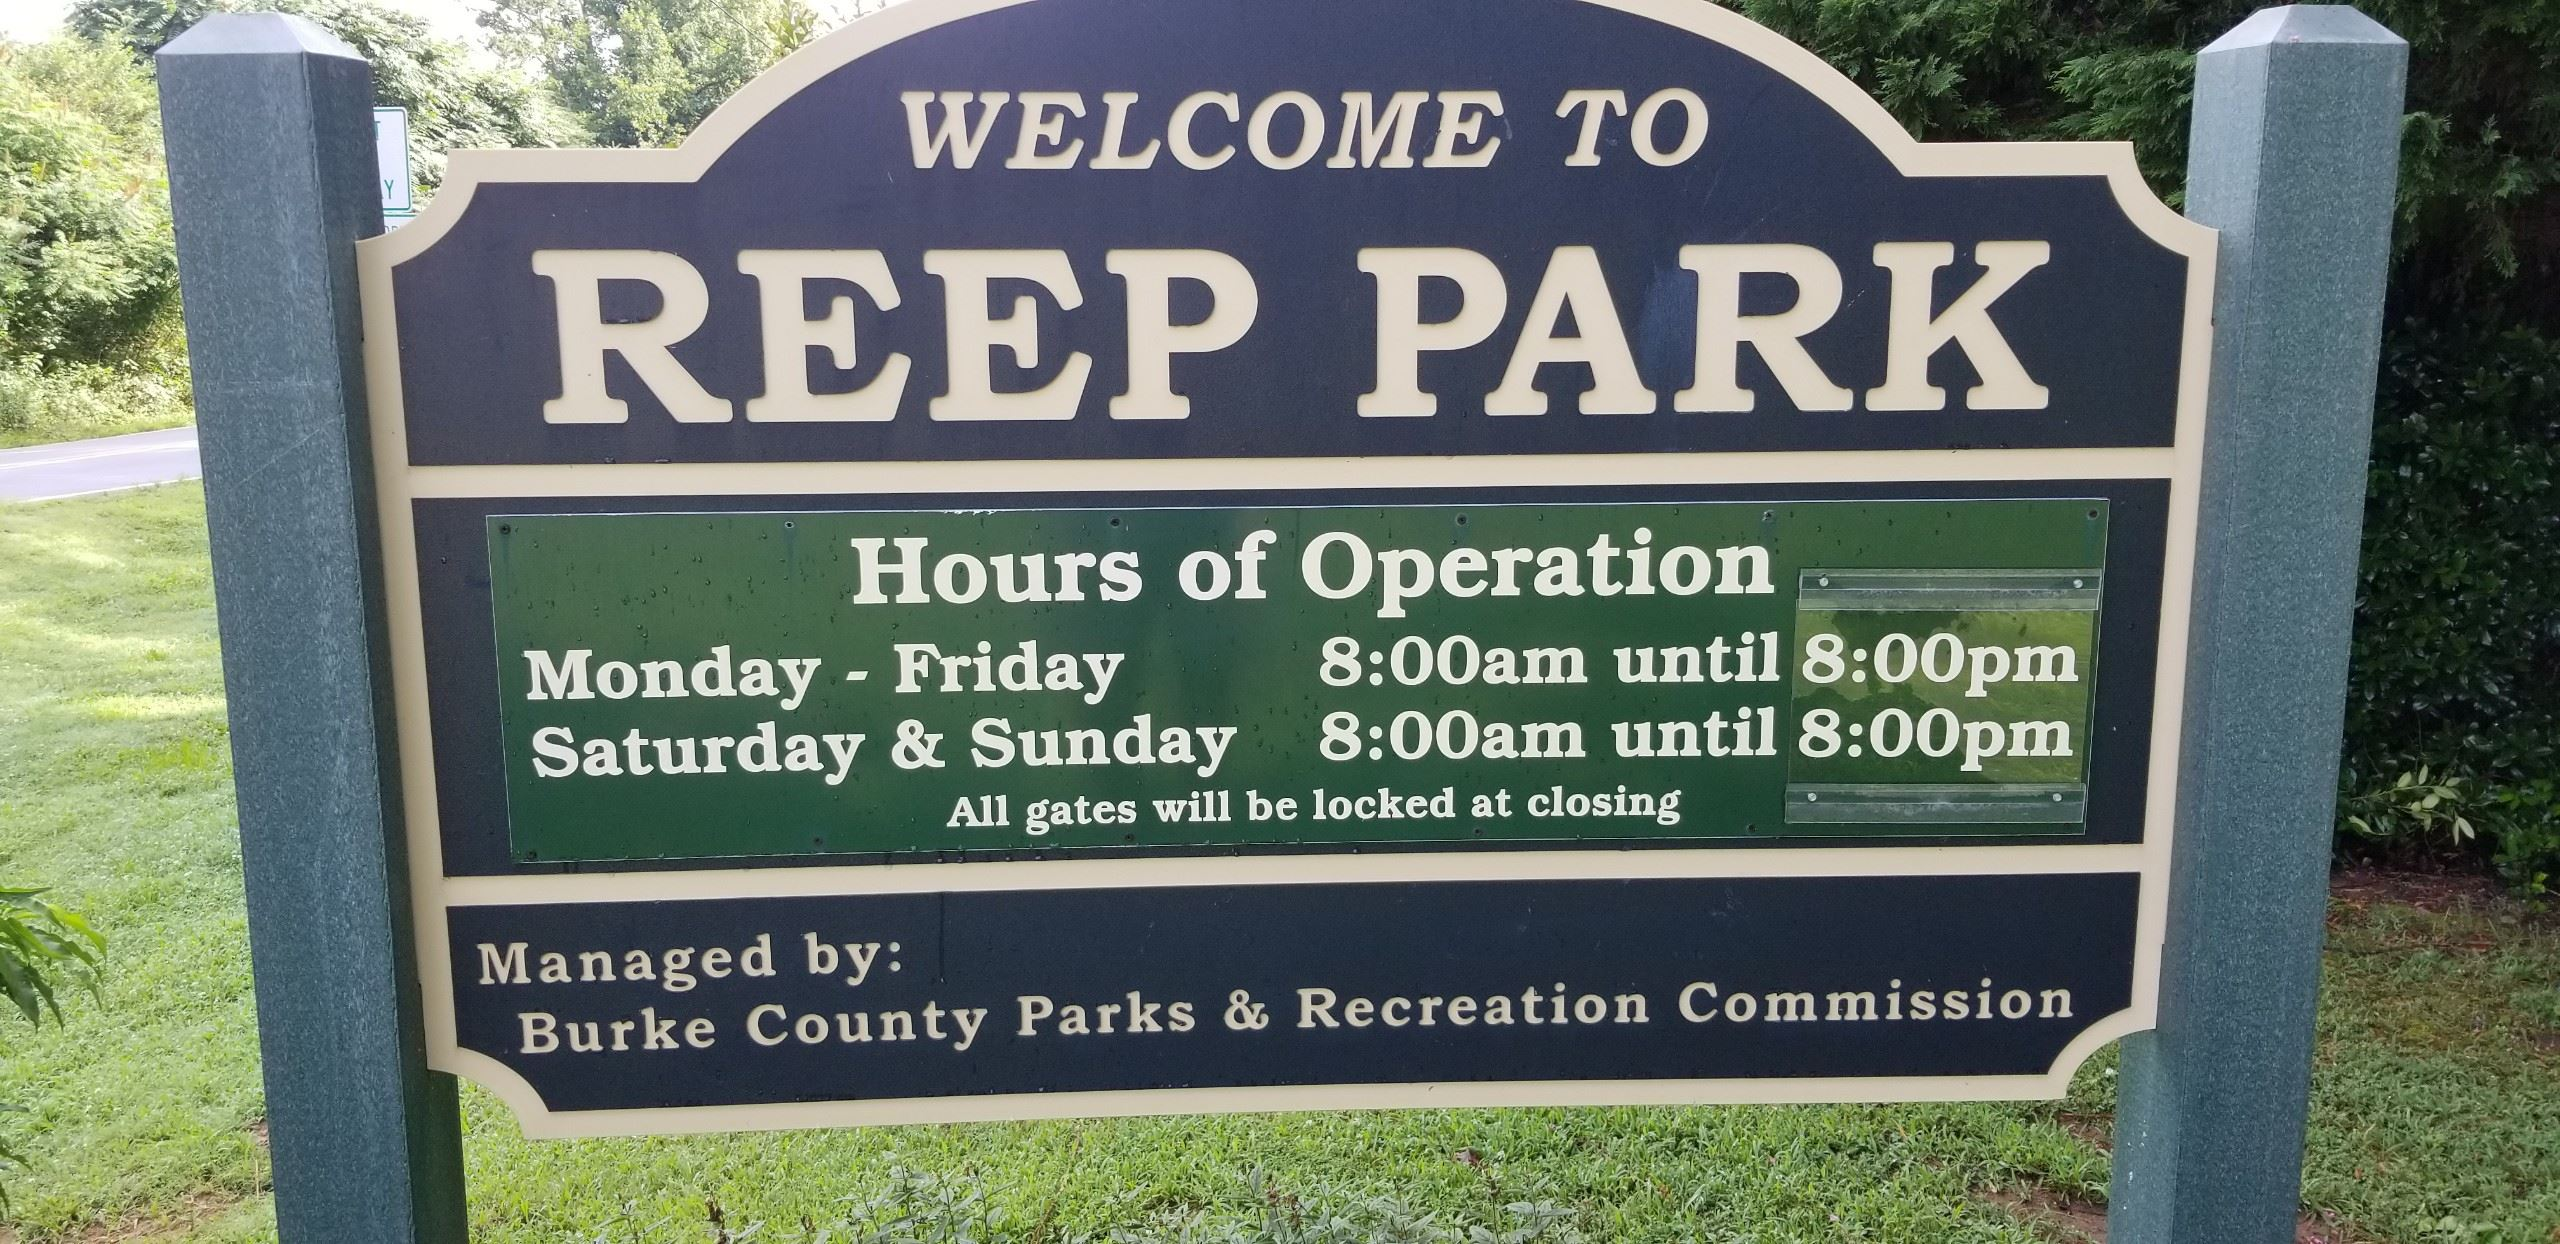 picture of the sign for Reep park